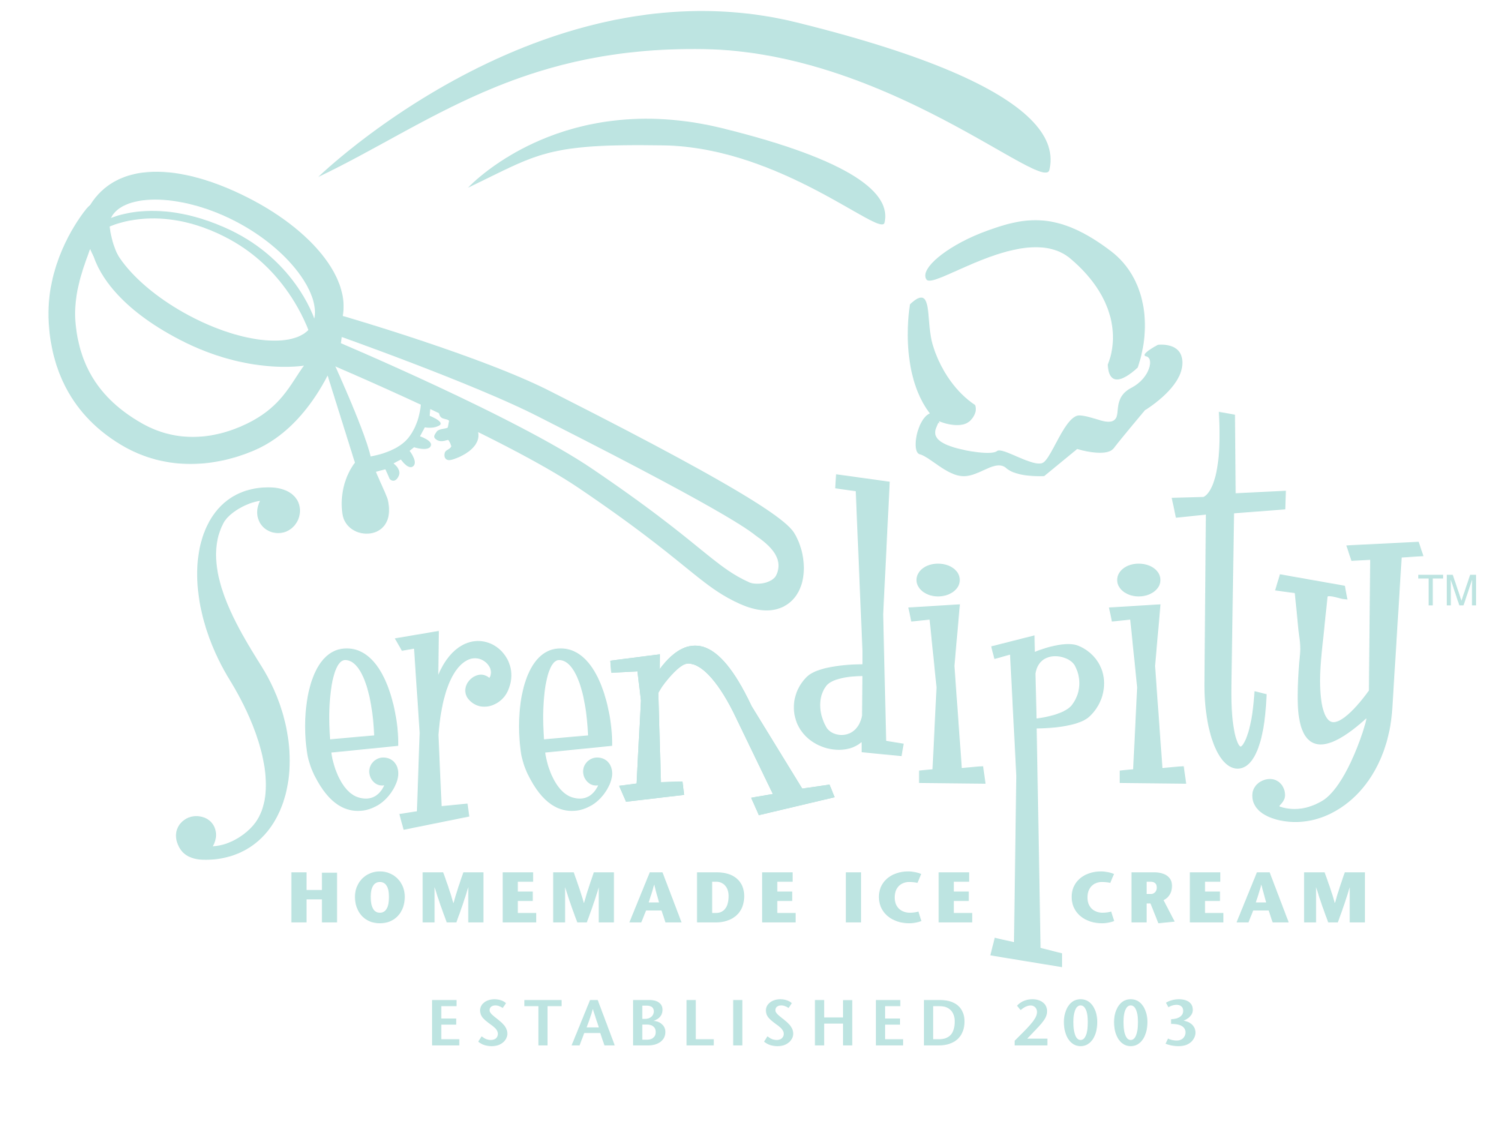 Serendipity Homemade Ice Cream